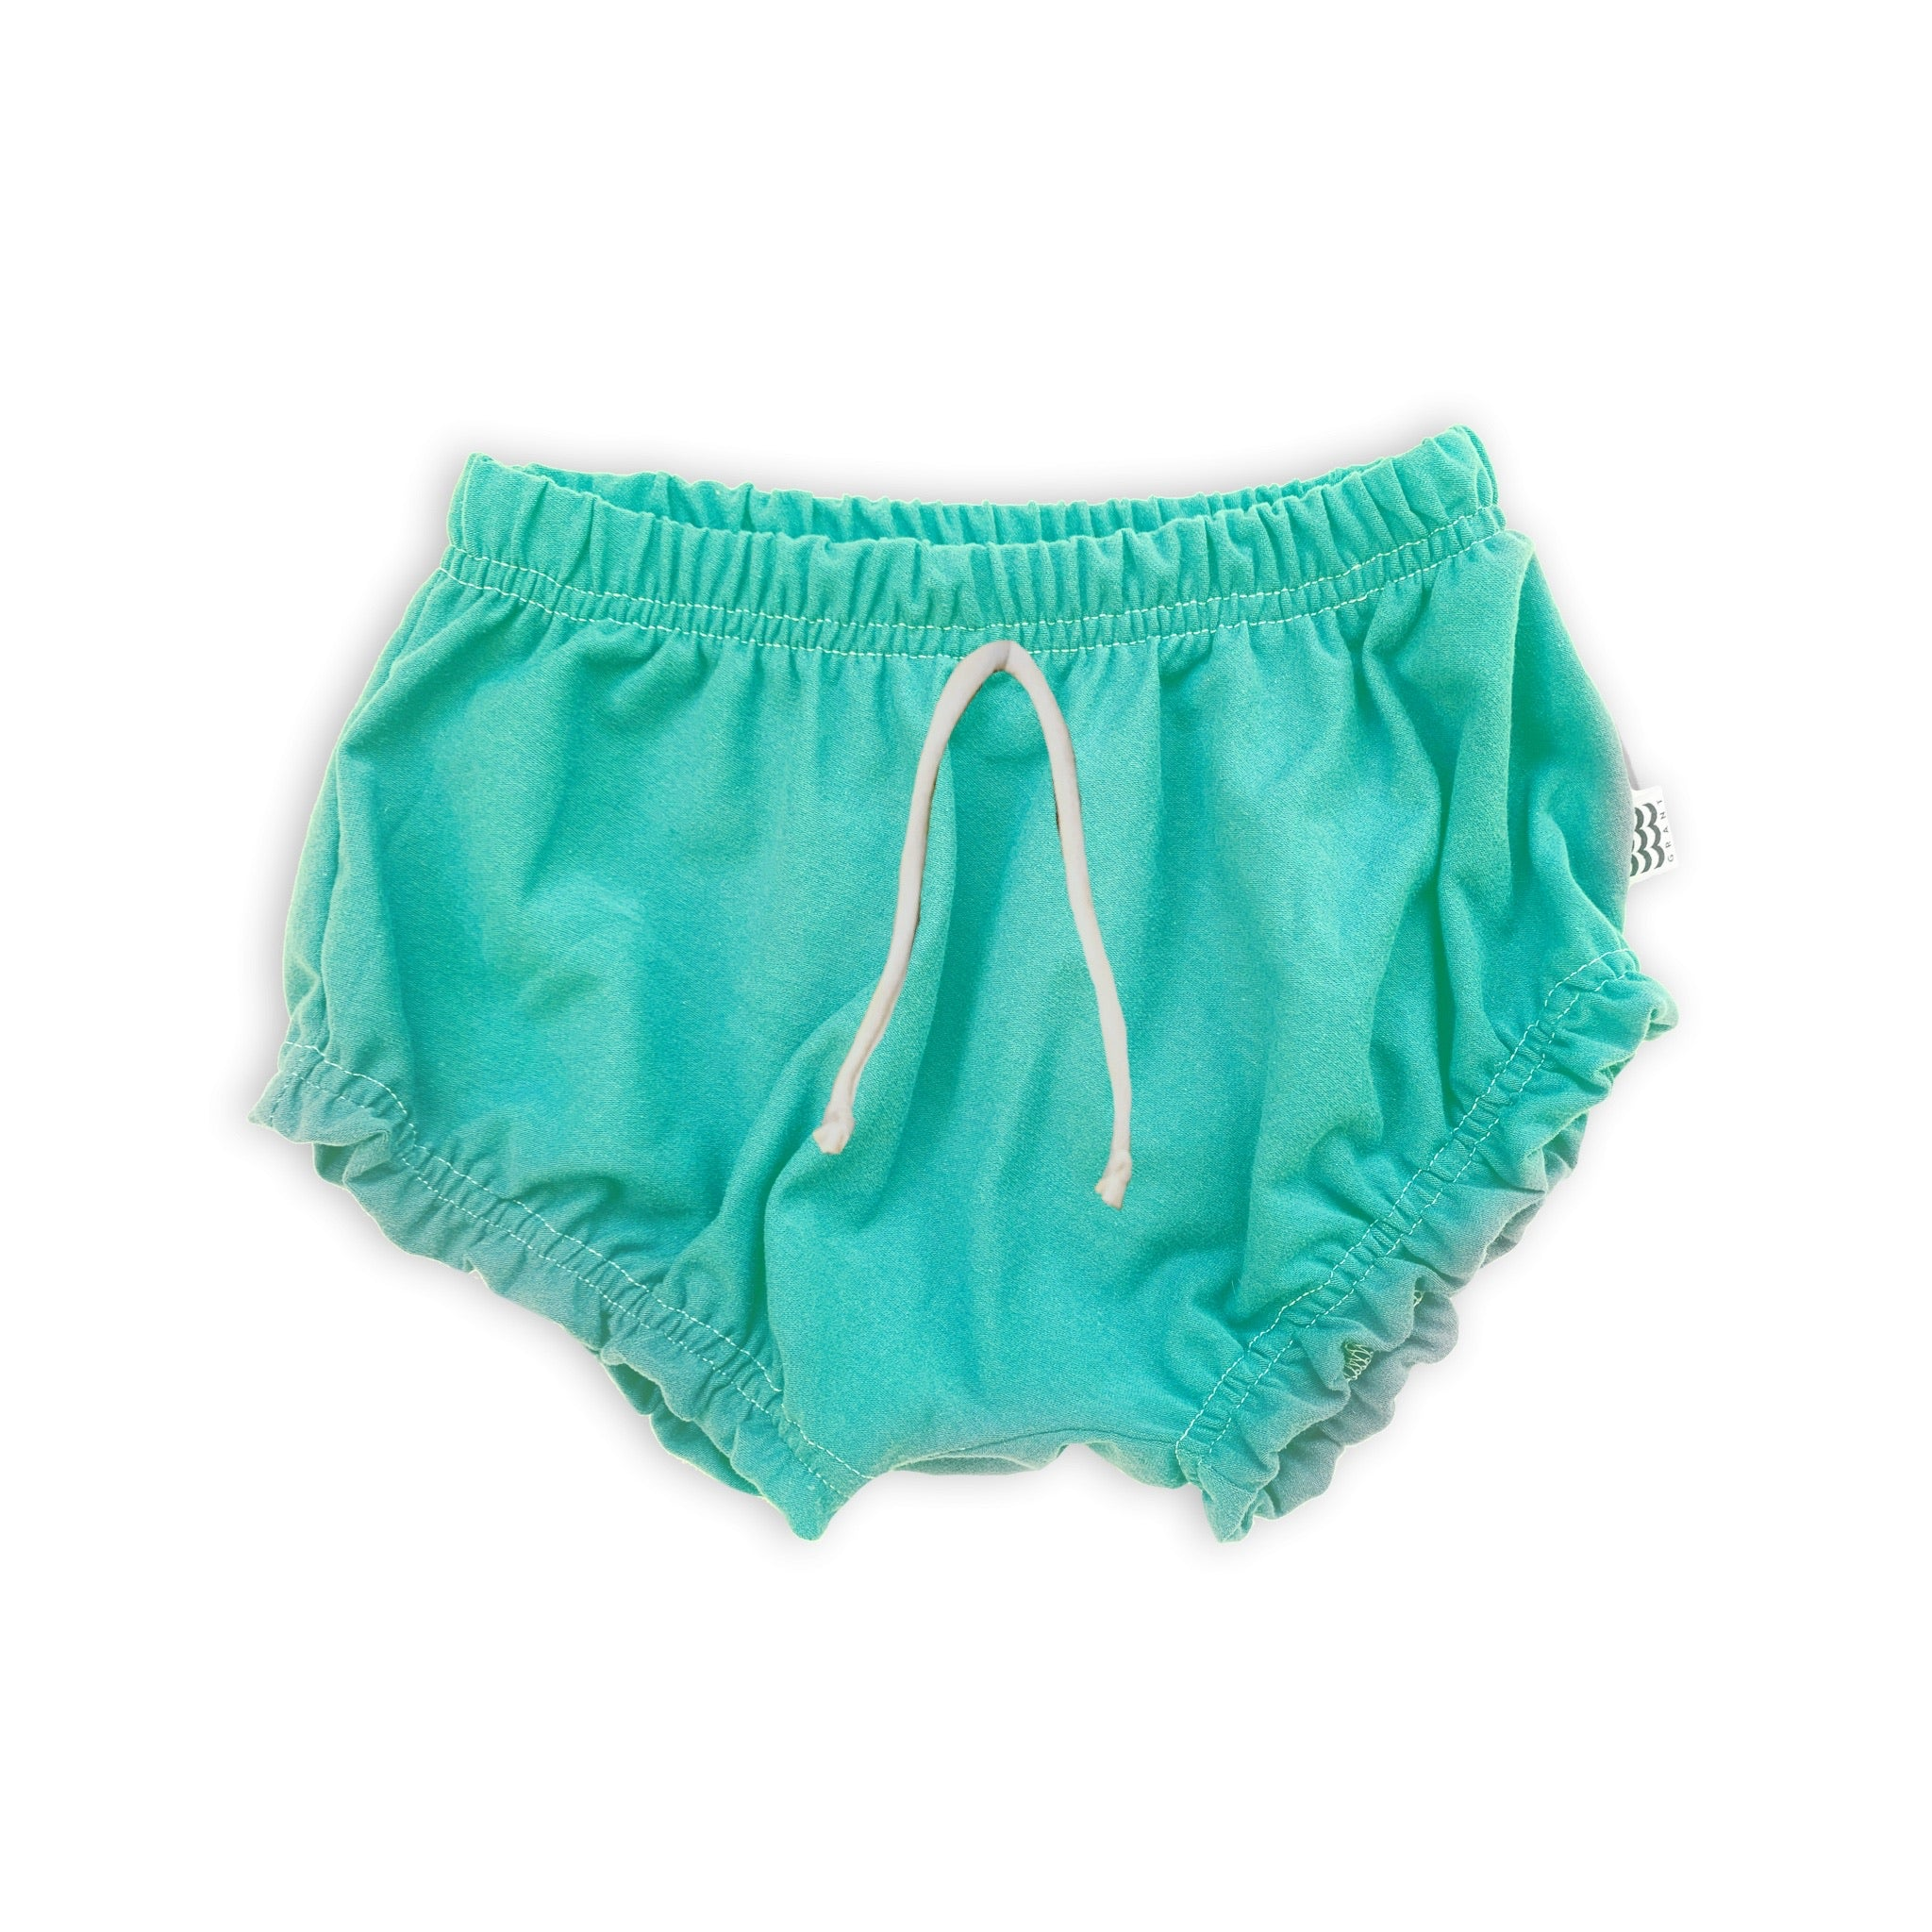 Ruffle Bummies in Lagoon